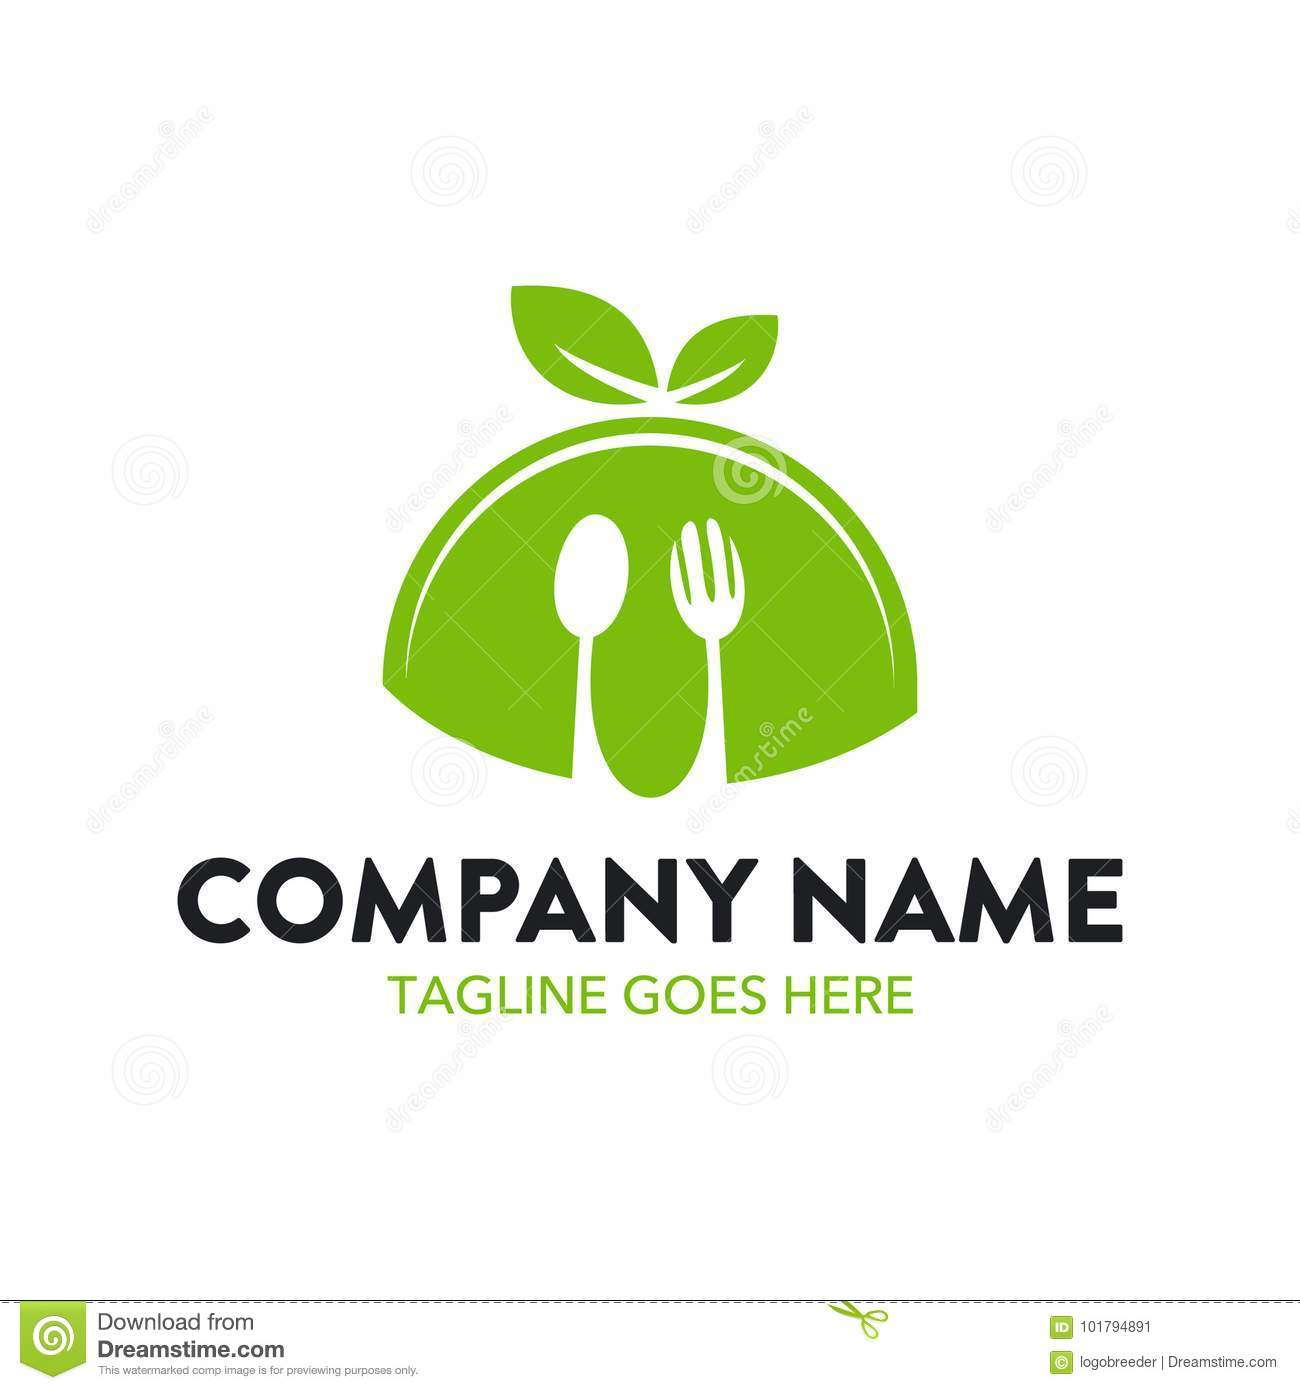 Unique Food And Restaurant Logo Template Stock Vector - Illustration